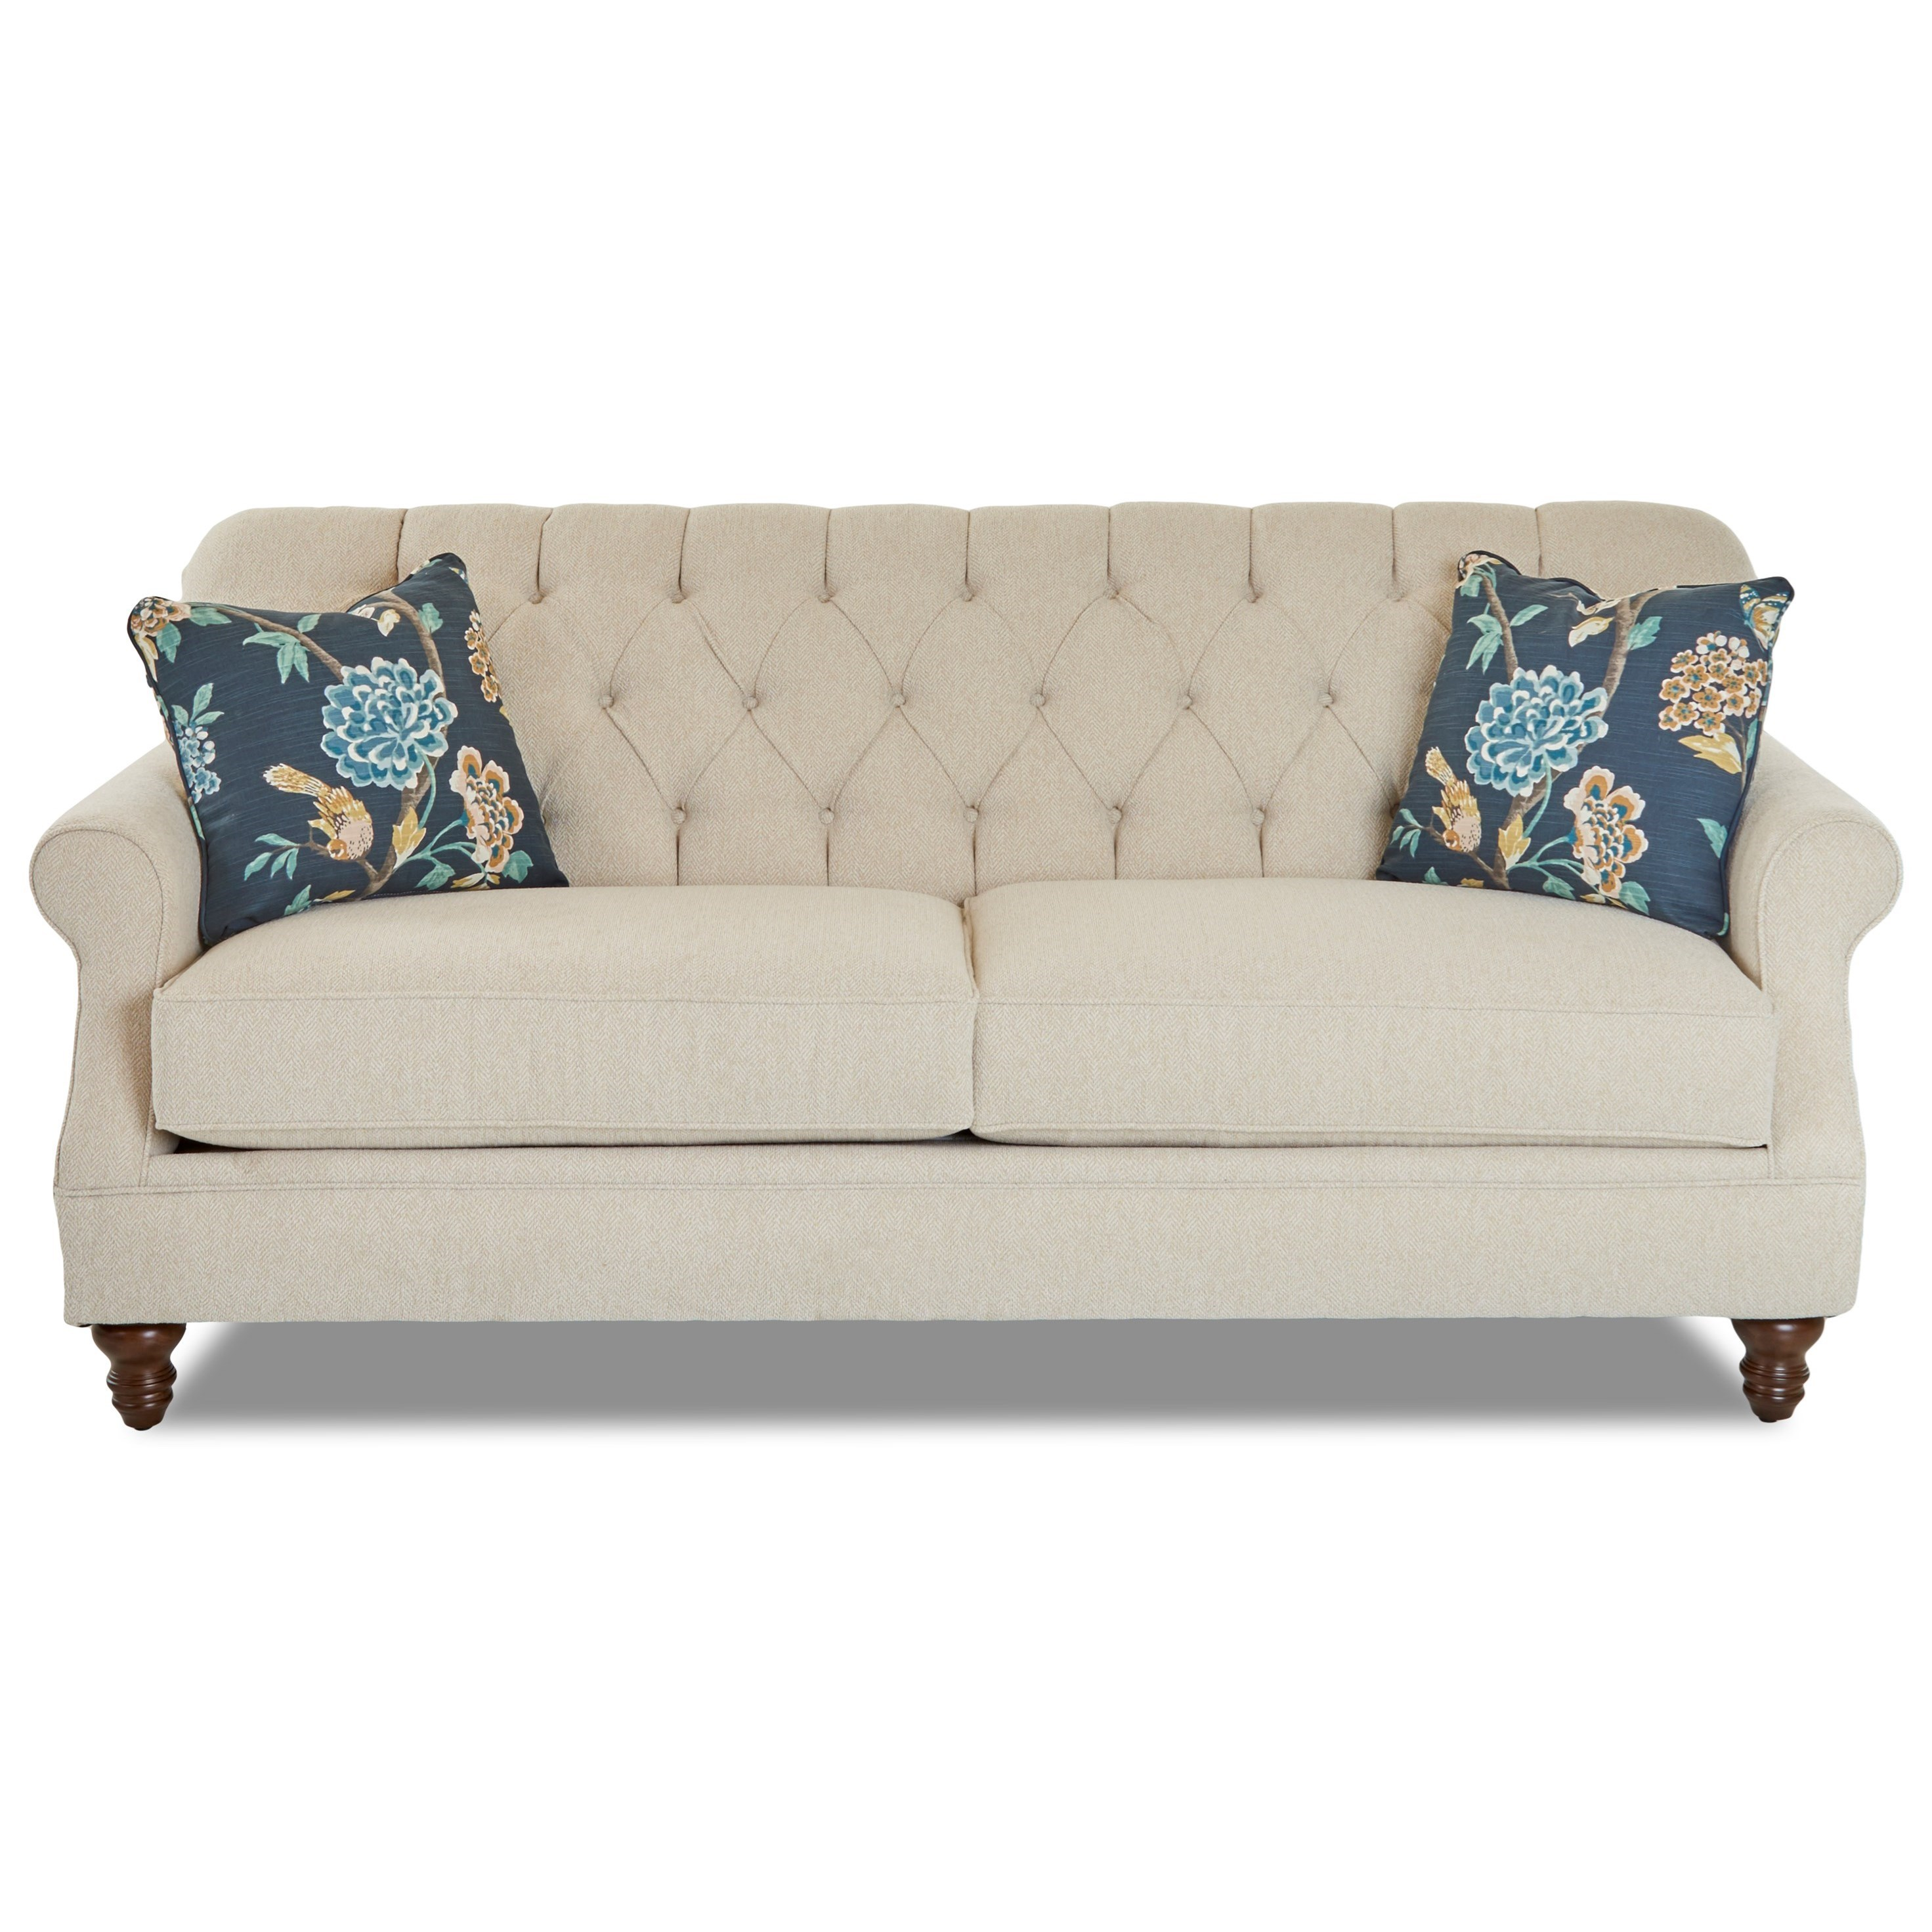 Traditional Tufted Apartment-Size Sofa